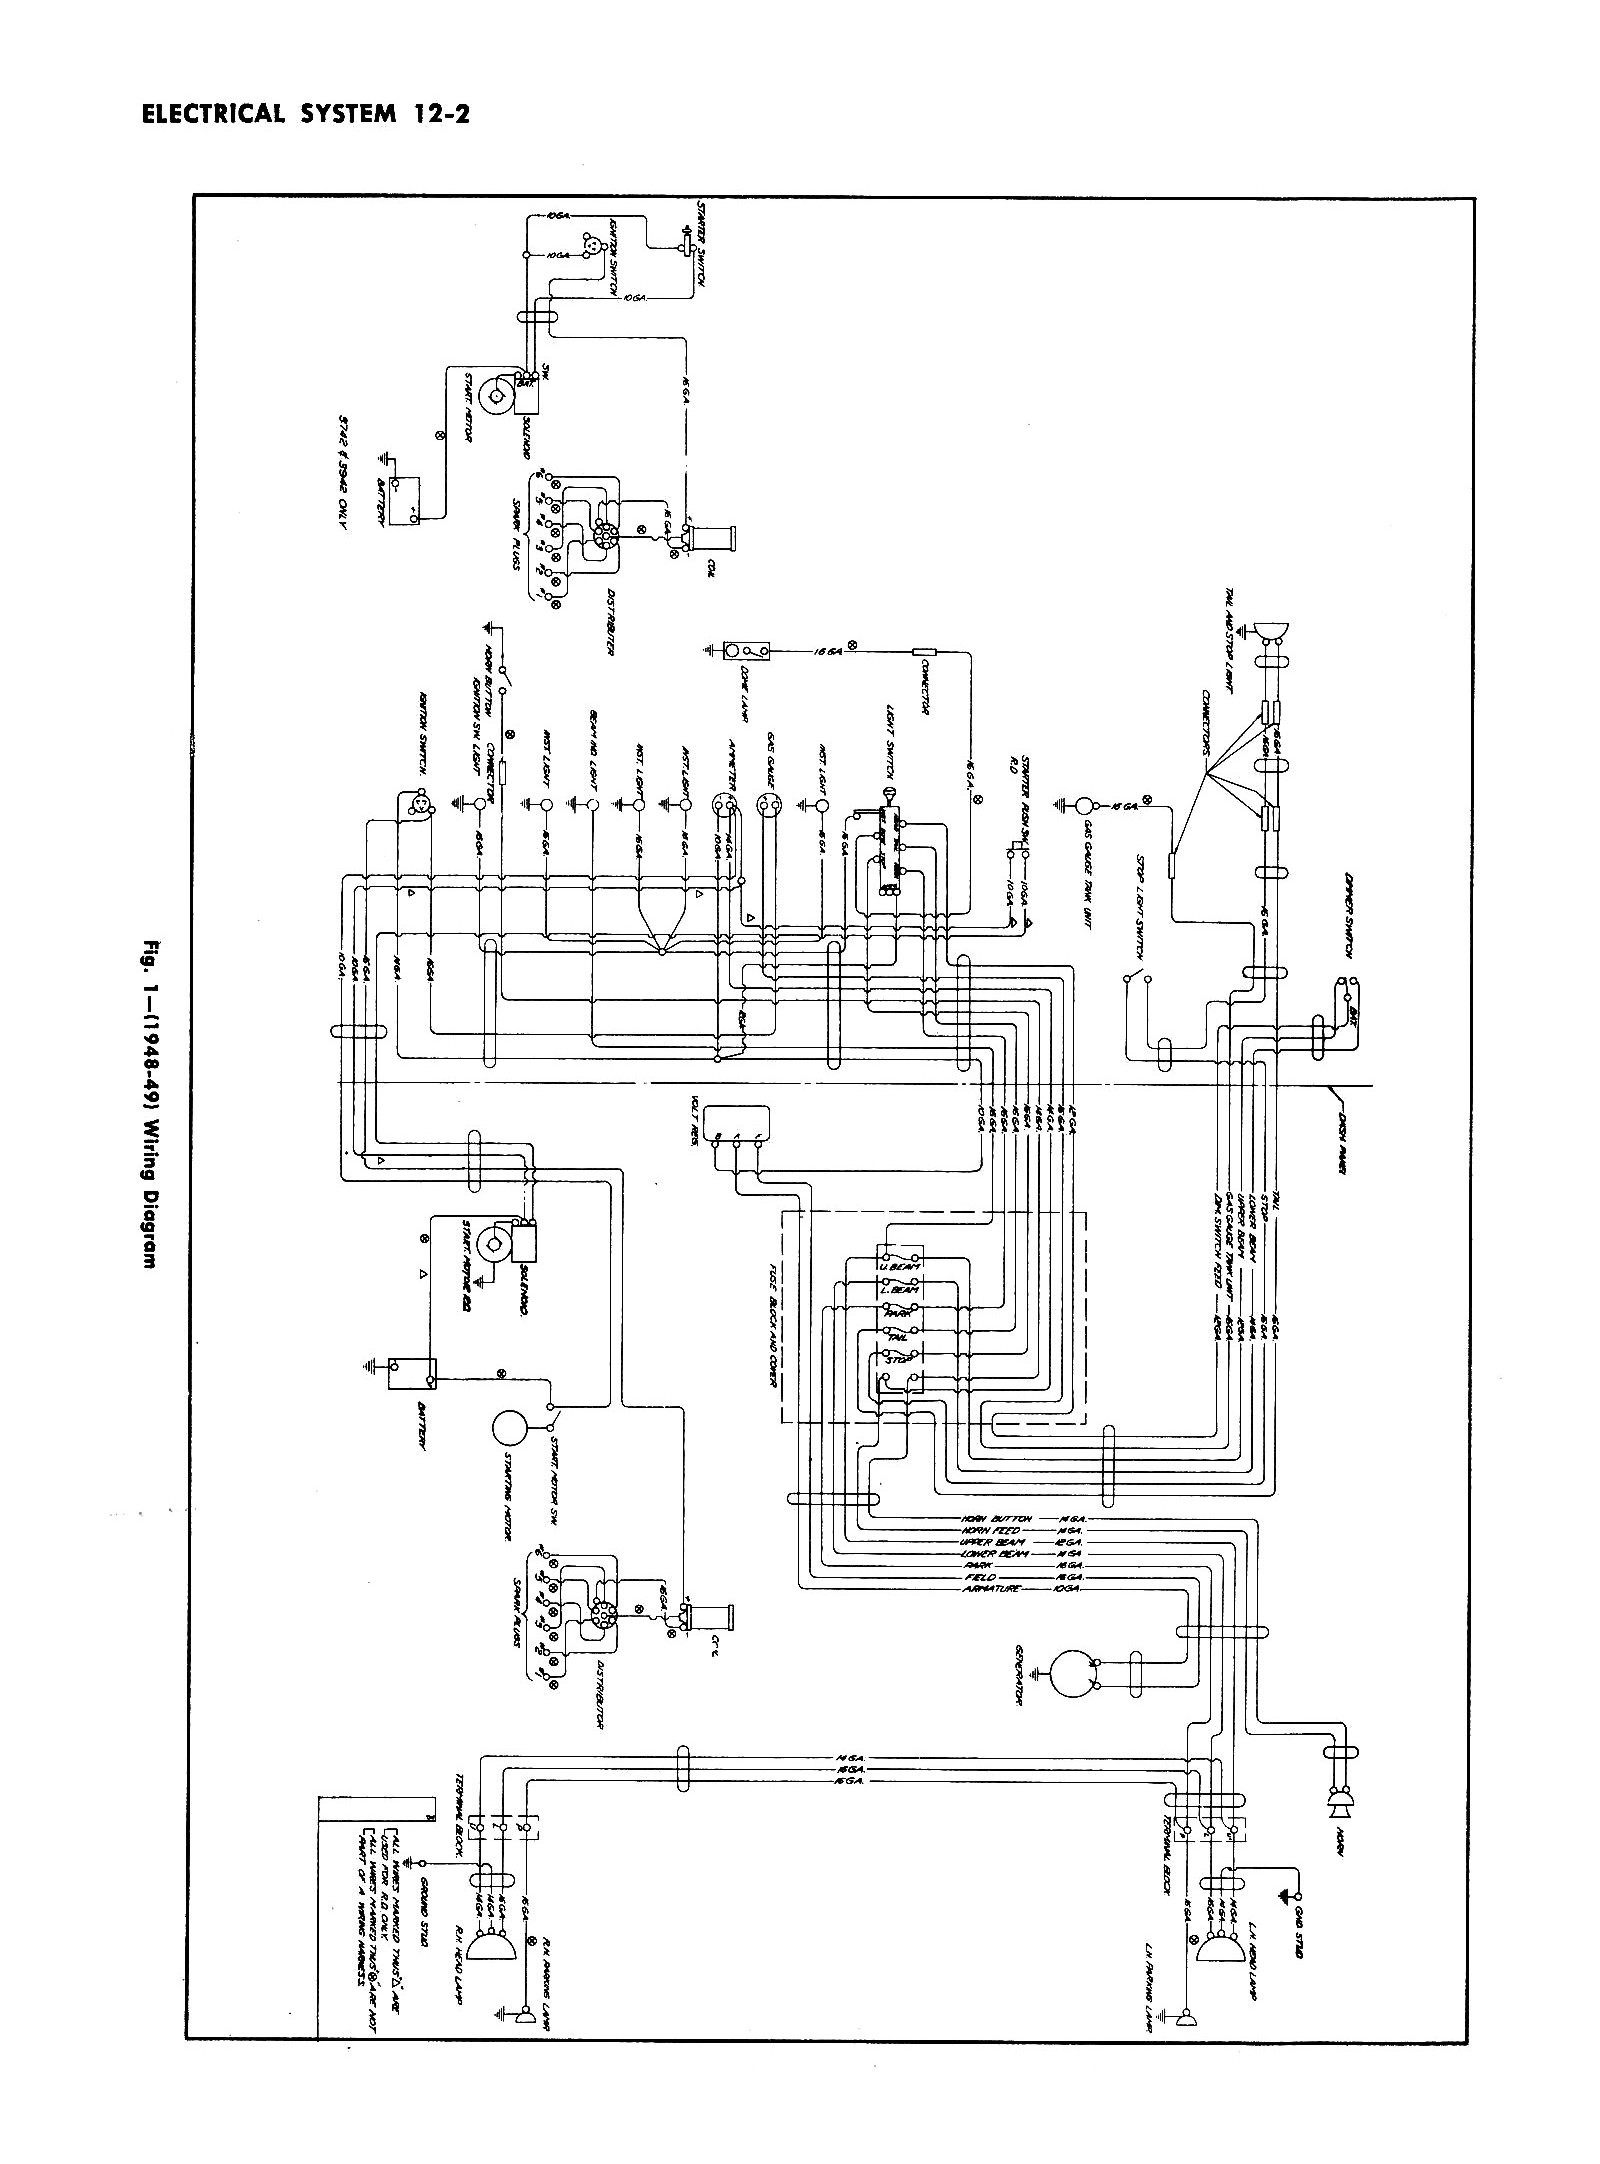 1967 Chevy Pickup Wiring Diagram Library Ford Truck Radio Gm Vehicle Data Diagrams U2022